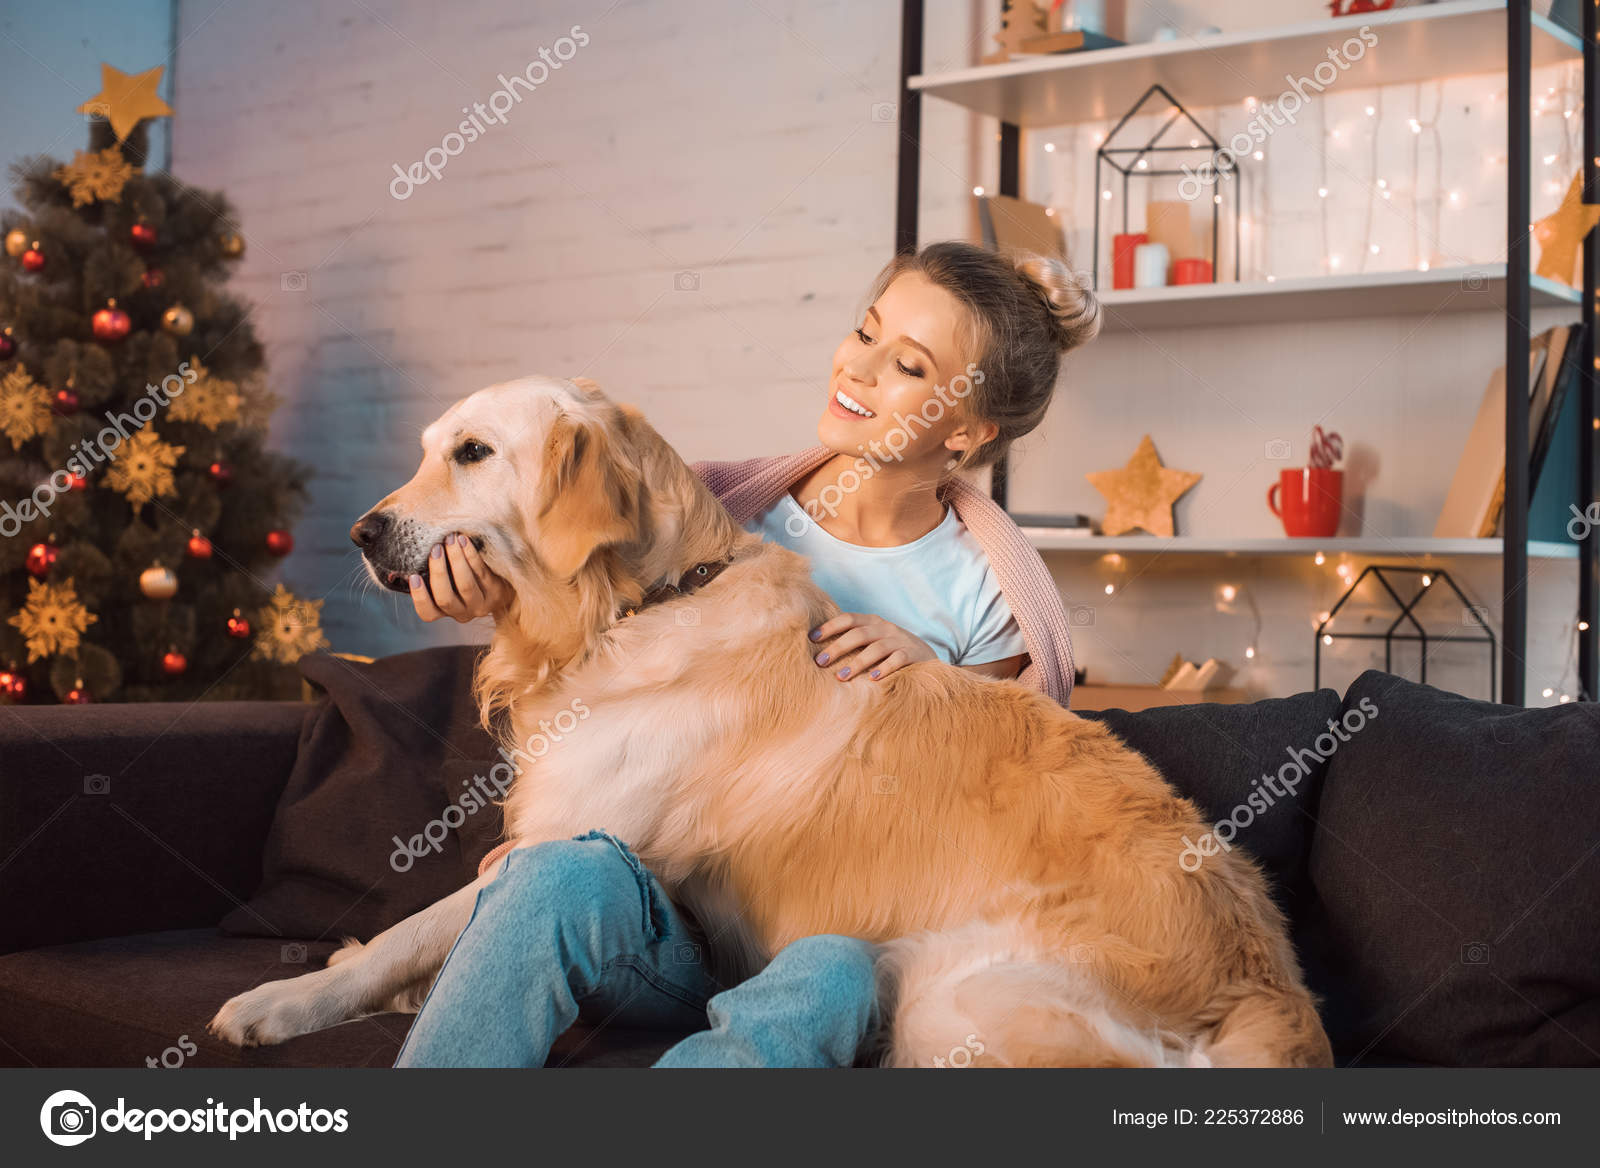 Beautiful Happy Young Blonde Woman Sitting Couch Hugging Golden